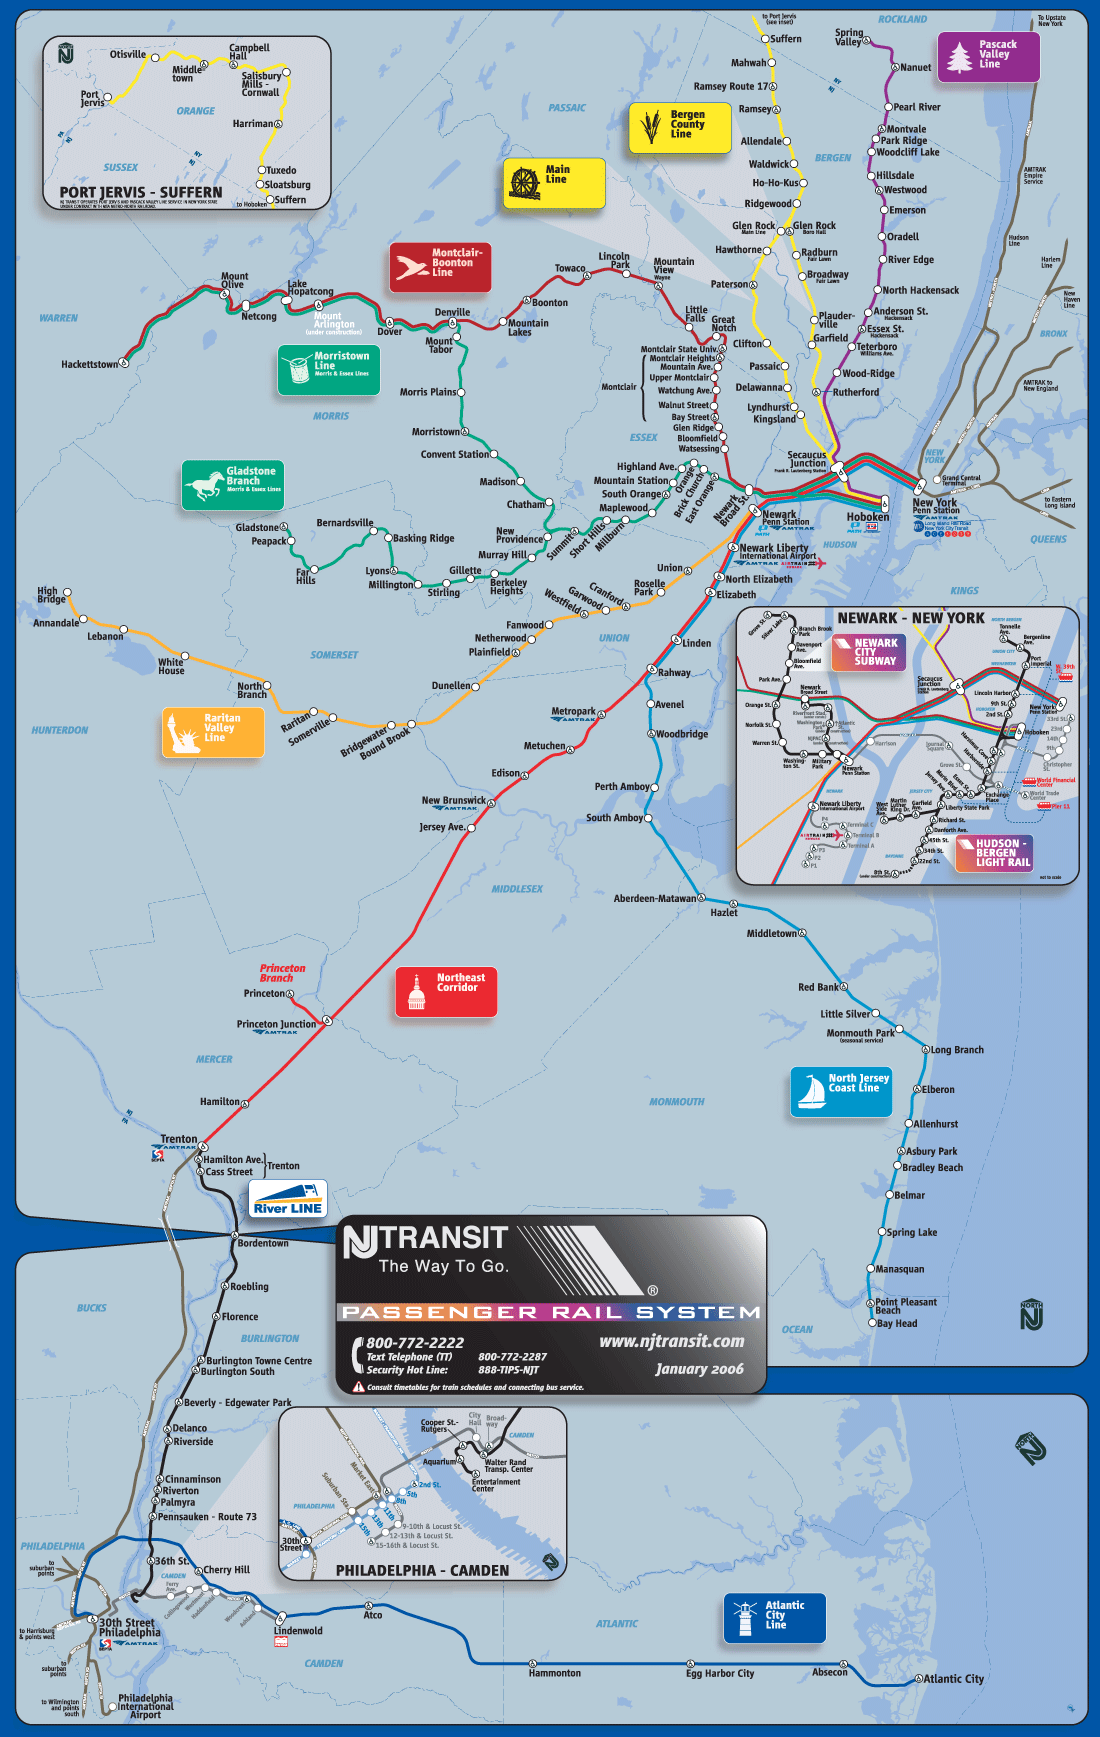 New Jersey Metro System Map (subway) large map